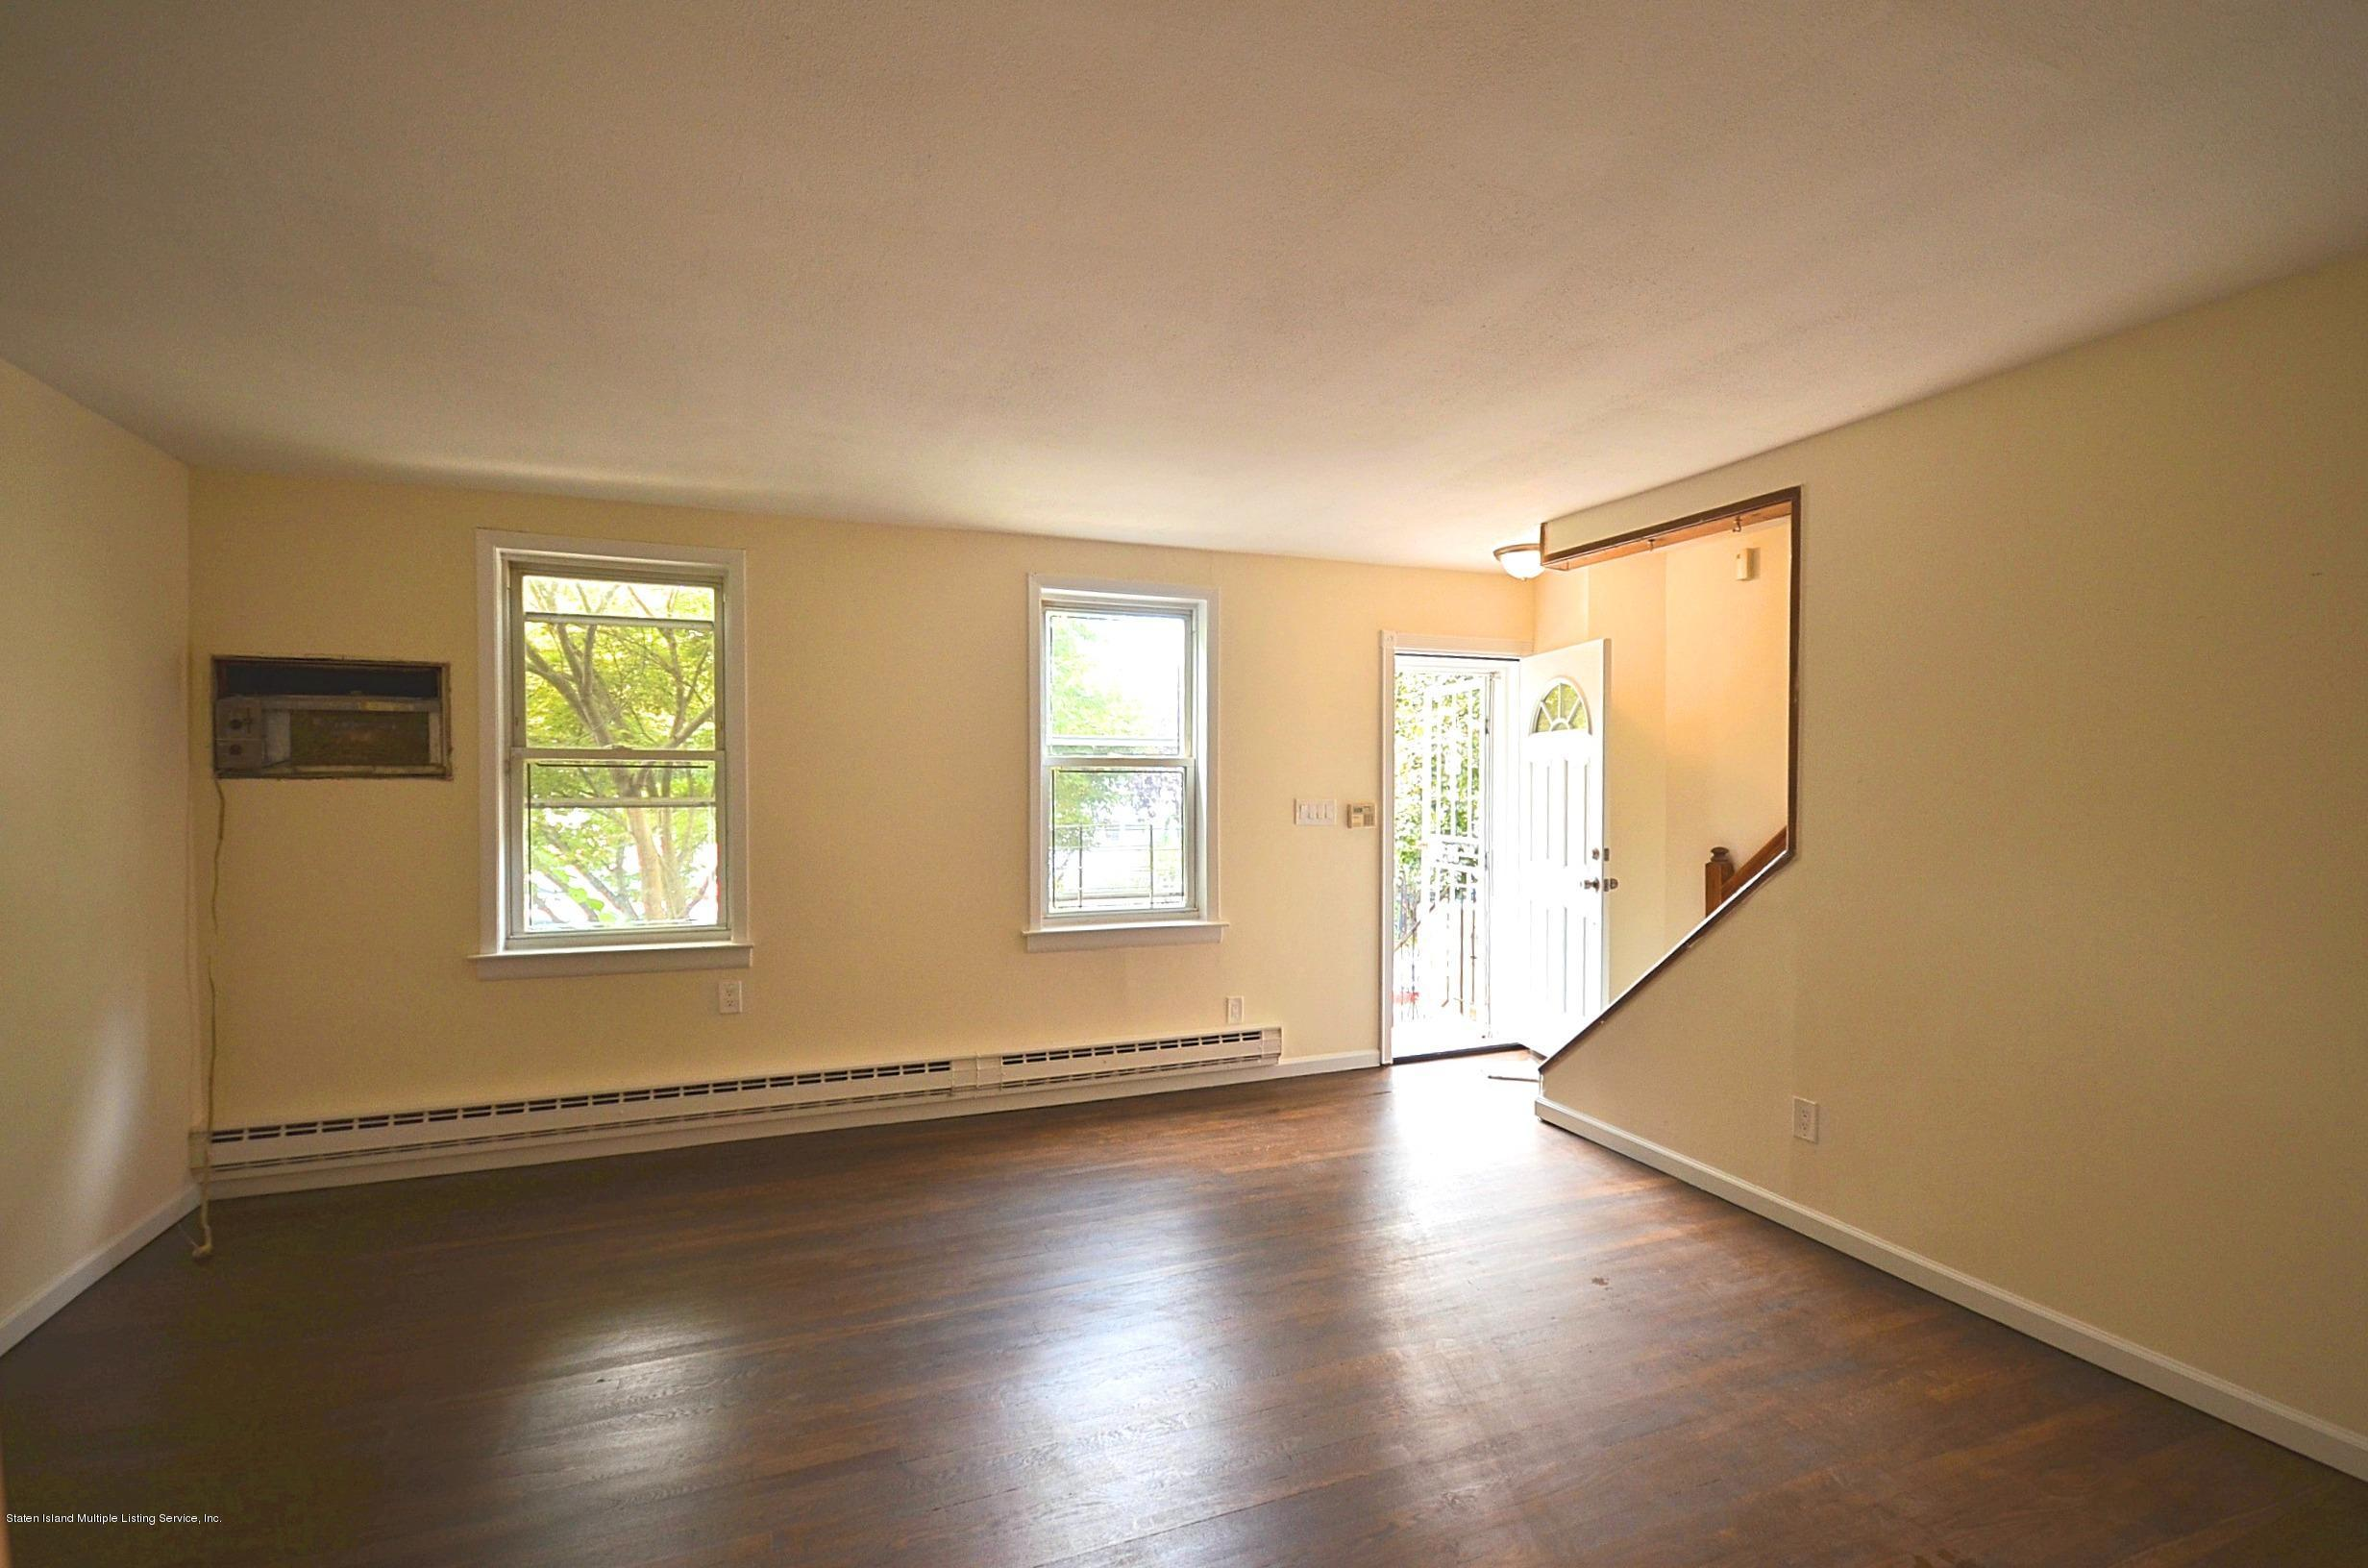 Single Family - Attached 113 Pendleton Place  Staten Island, NY 10301, MLS-1131171-3